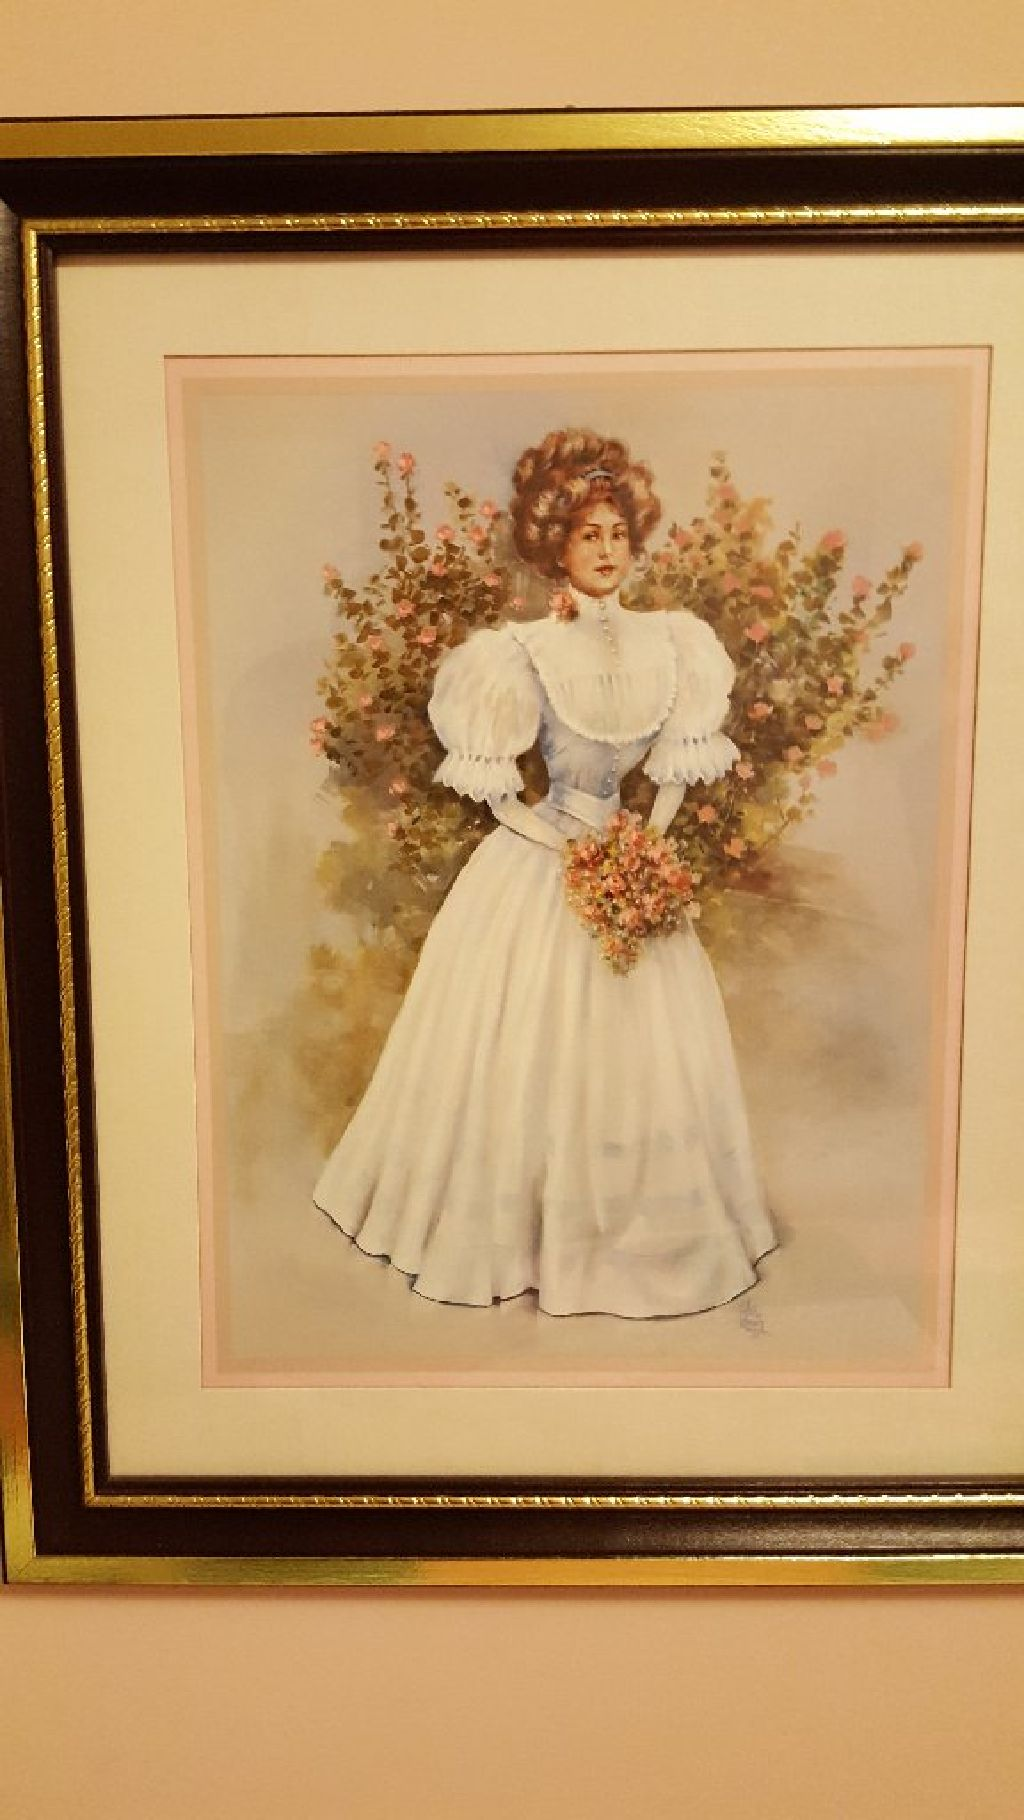 Vintage Home Interior Wall Art - Claz.org Selmer